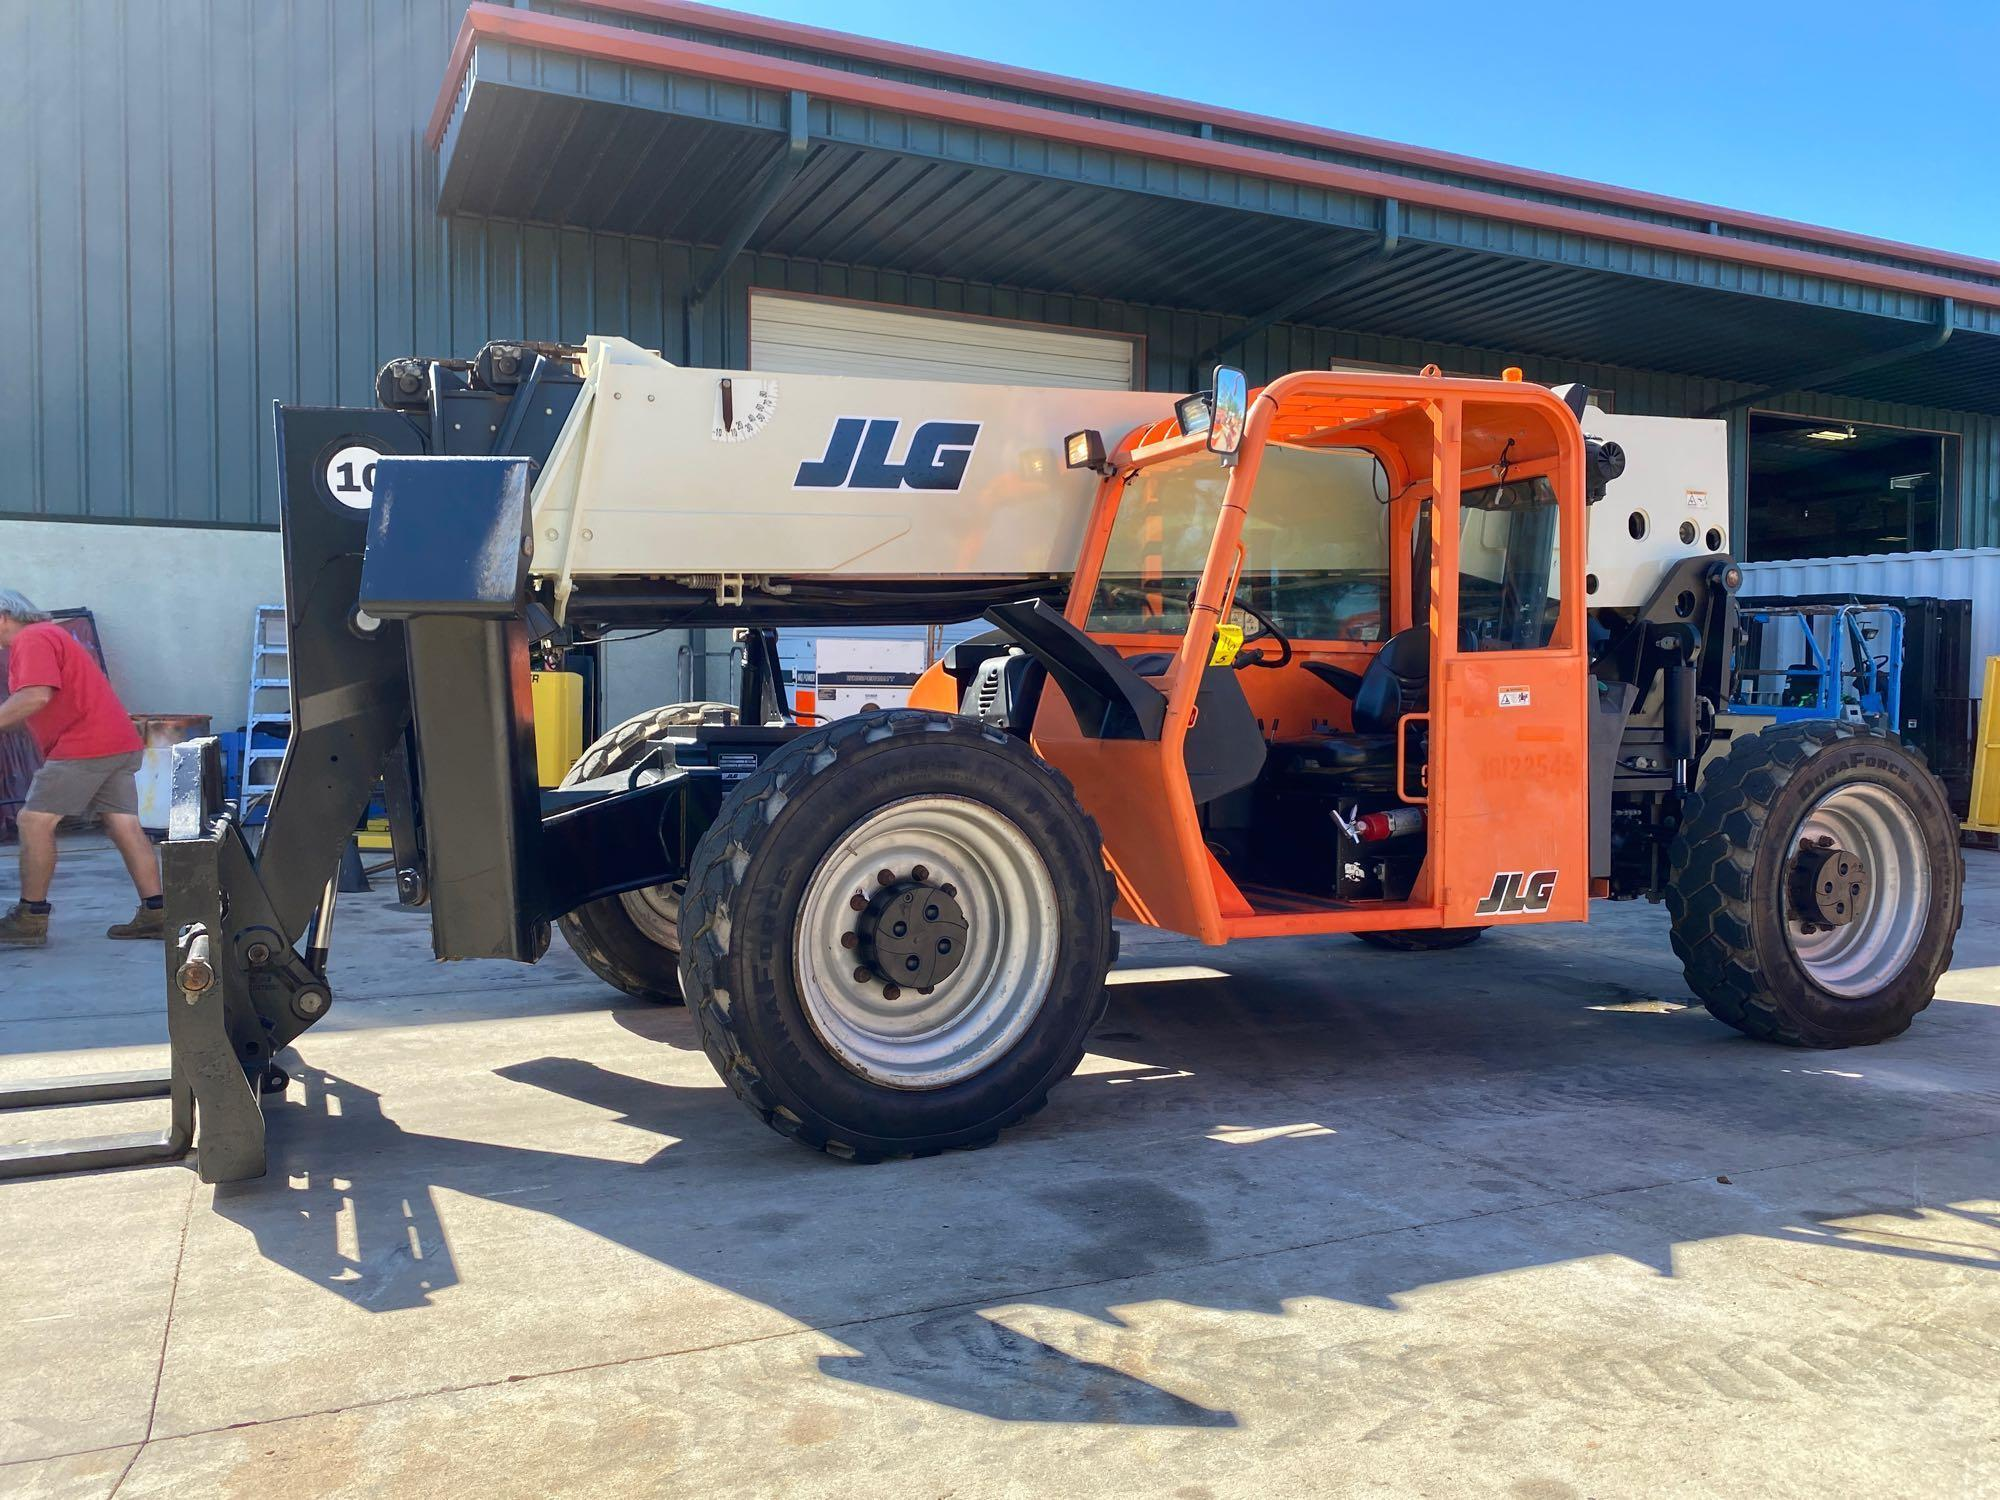 2013 JLG TELESCOPIC FORKLIFT MODEL G10-55A, 10,000 LB CAPACITY, OUTRIGGERS, 5,717.7 HOURS SHOWING, C - Image 9 of 16